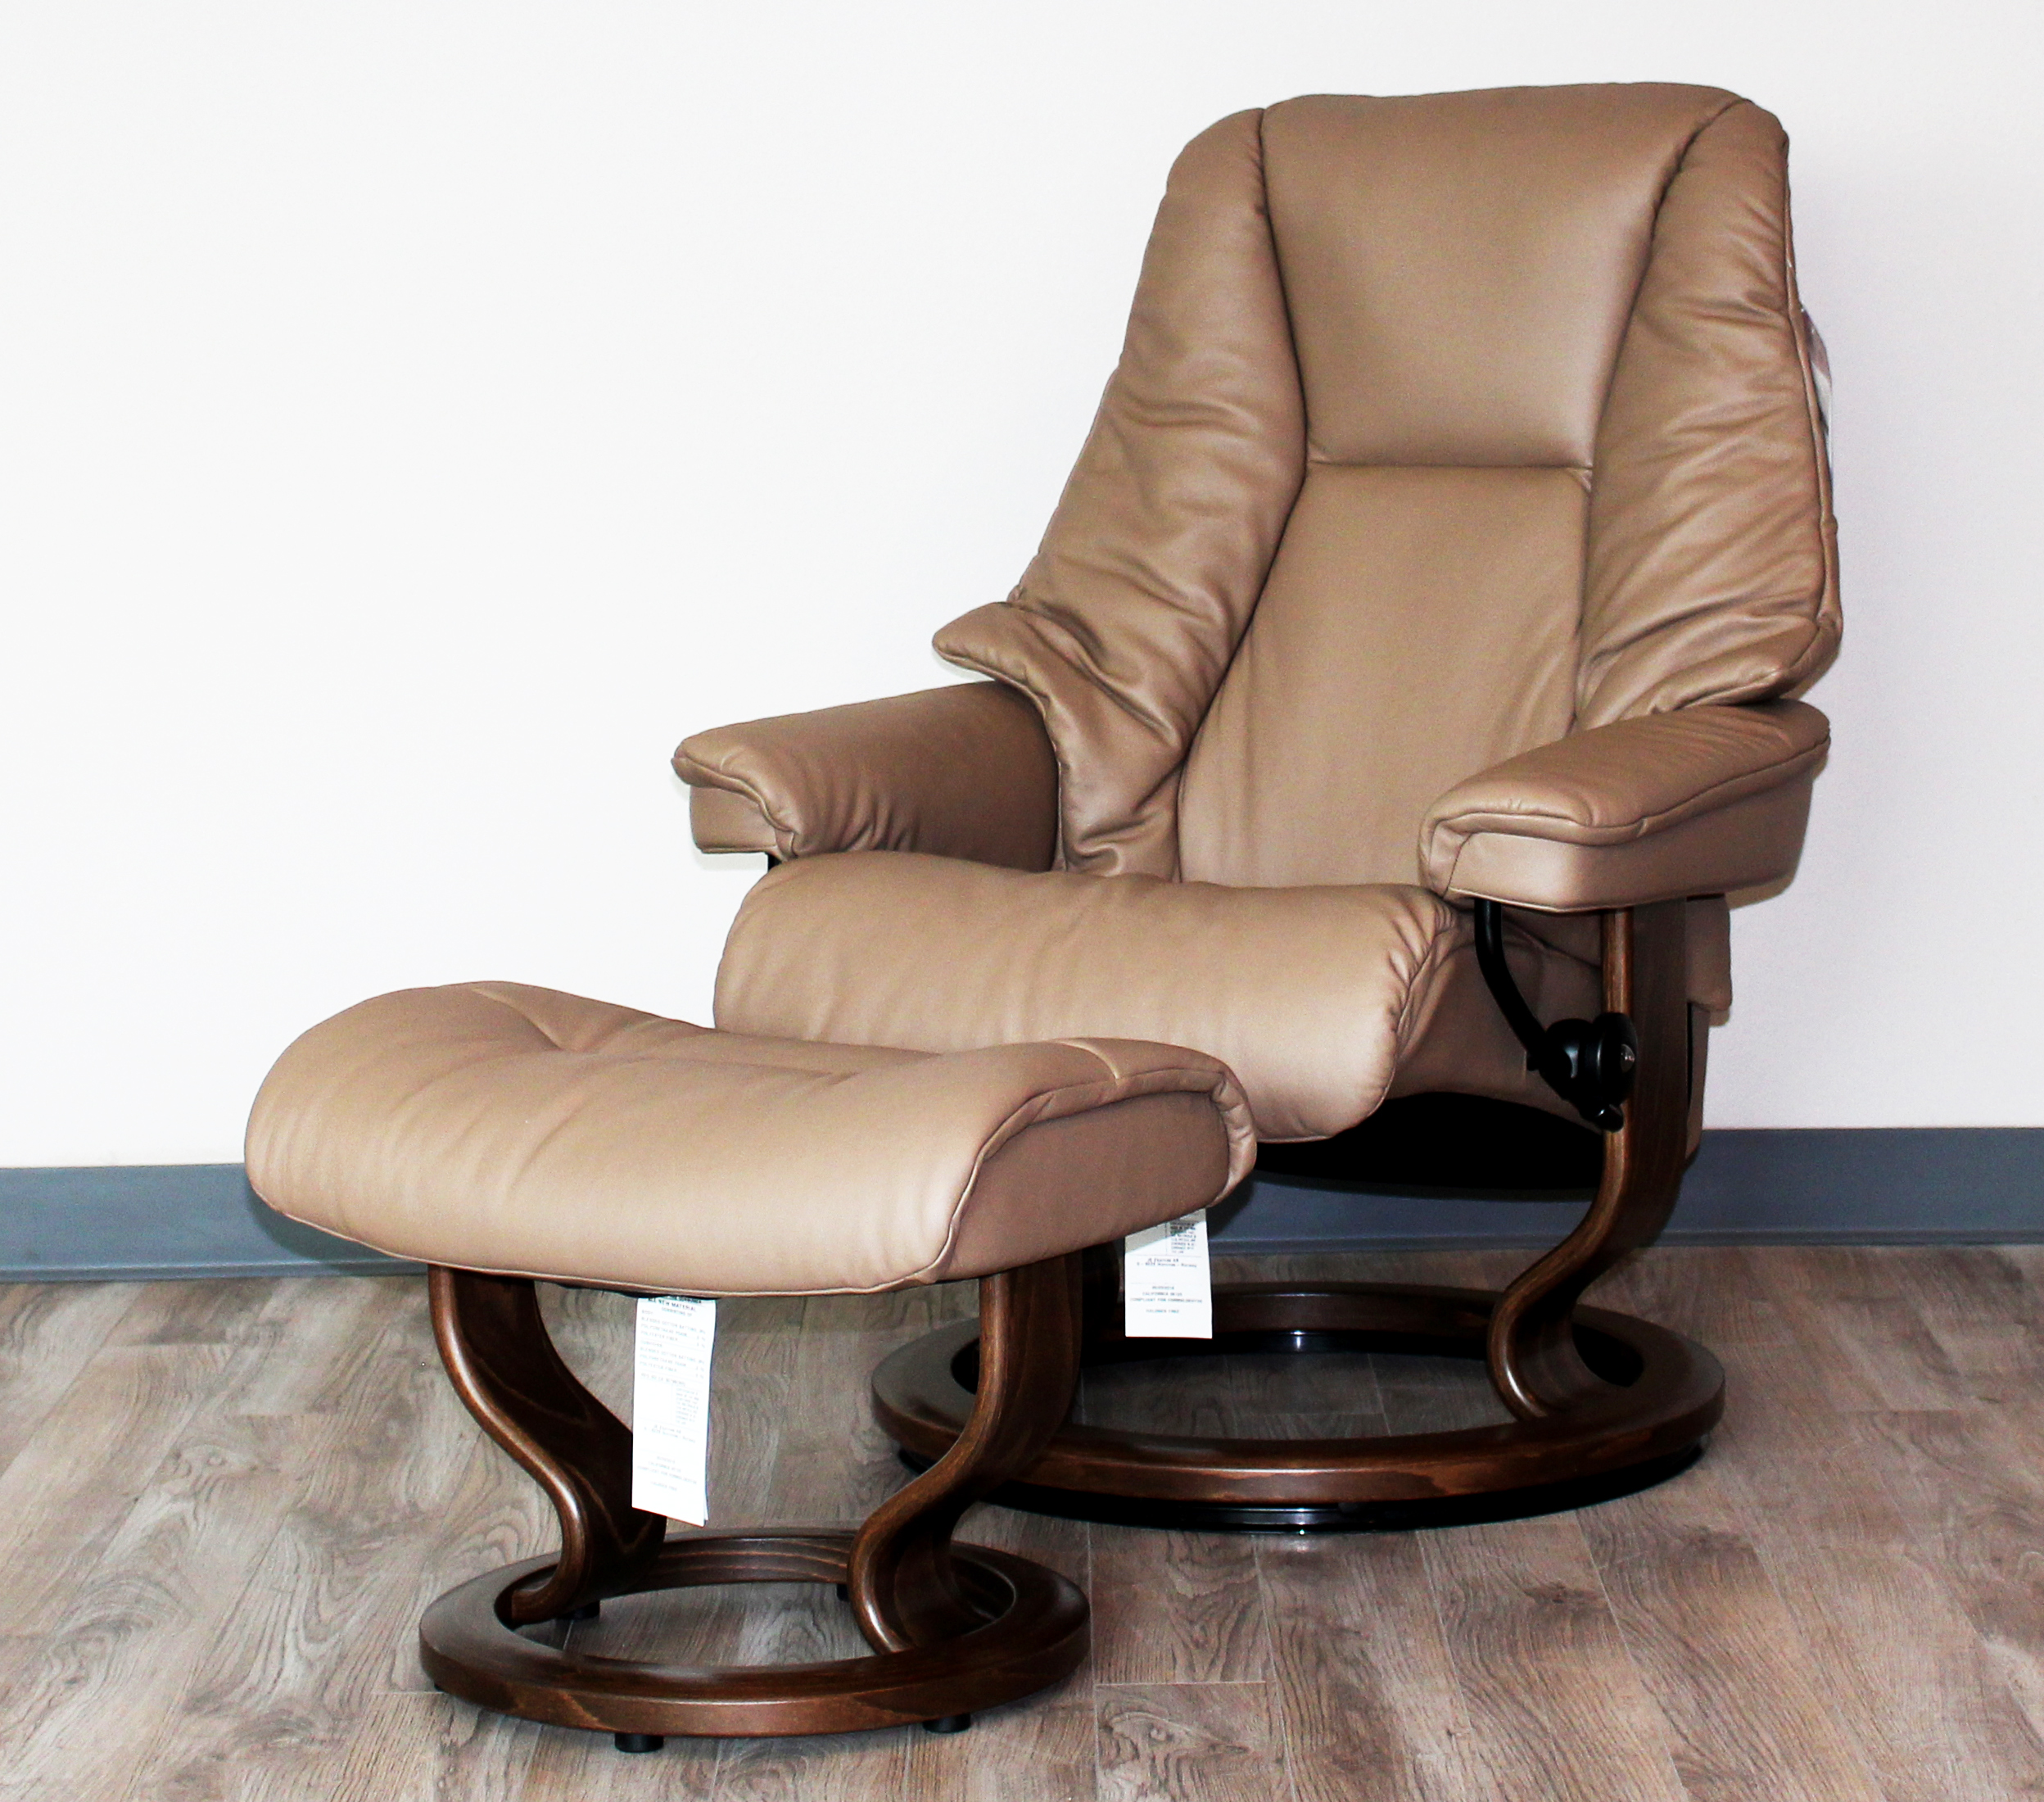 Stresless Stressless Live Recliner Classic Wood Base Chair And Ottoman By Ekornes